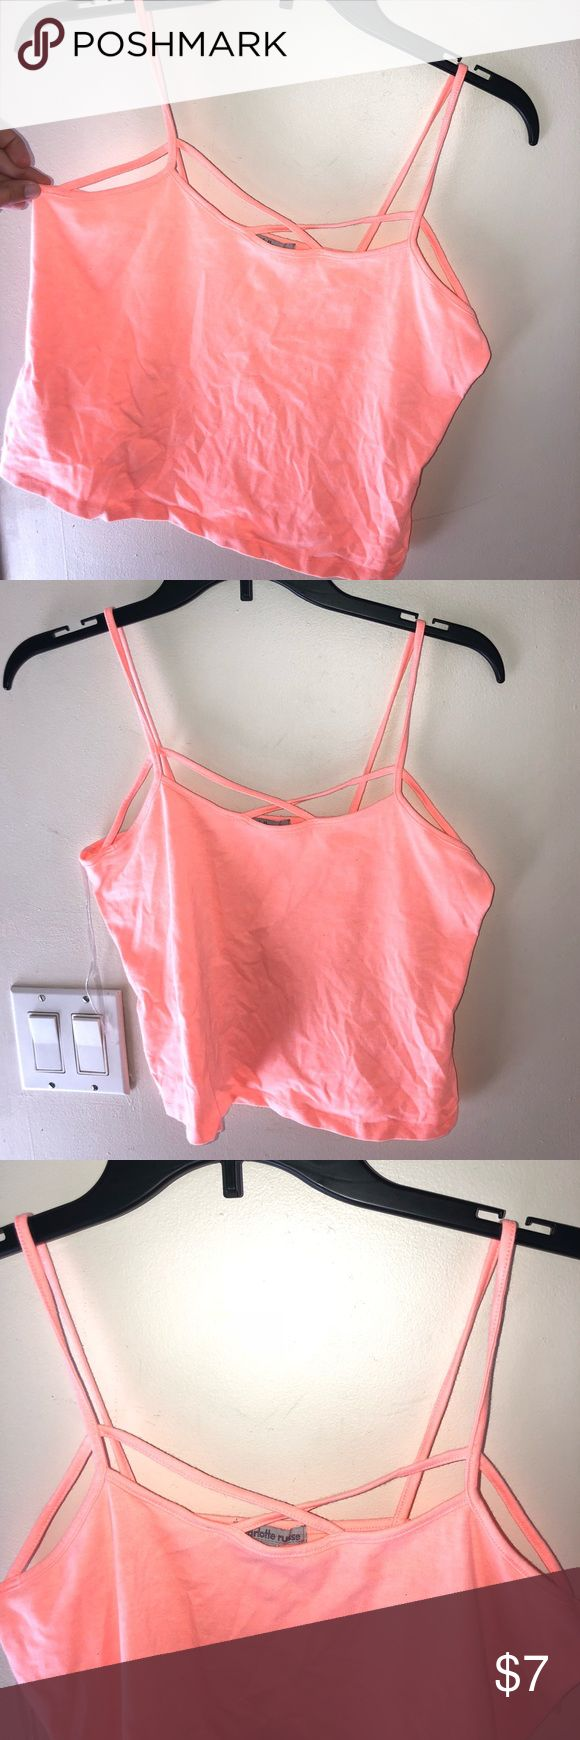 Pink tank crop top! Bought from Charlotte Ruuse size large! It is a crop top and perfect for the summer. Never worn, only tried on. Charlotte Russe Tops Crop Tops